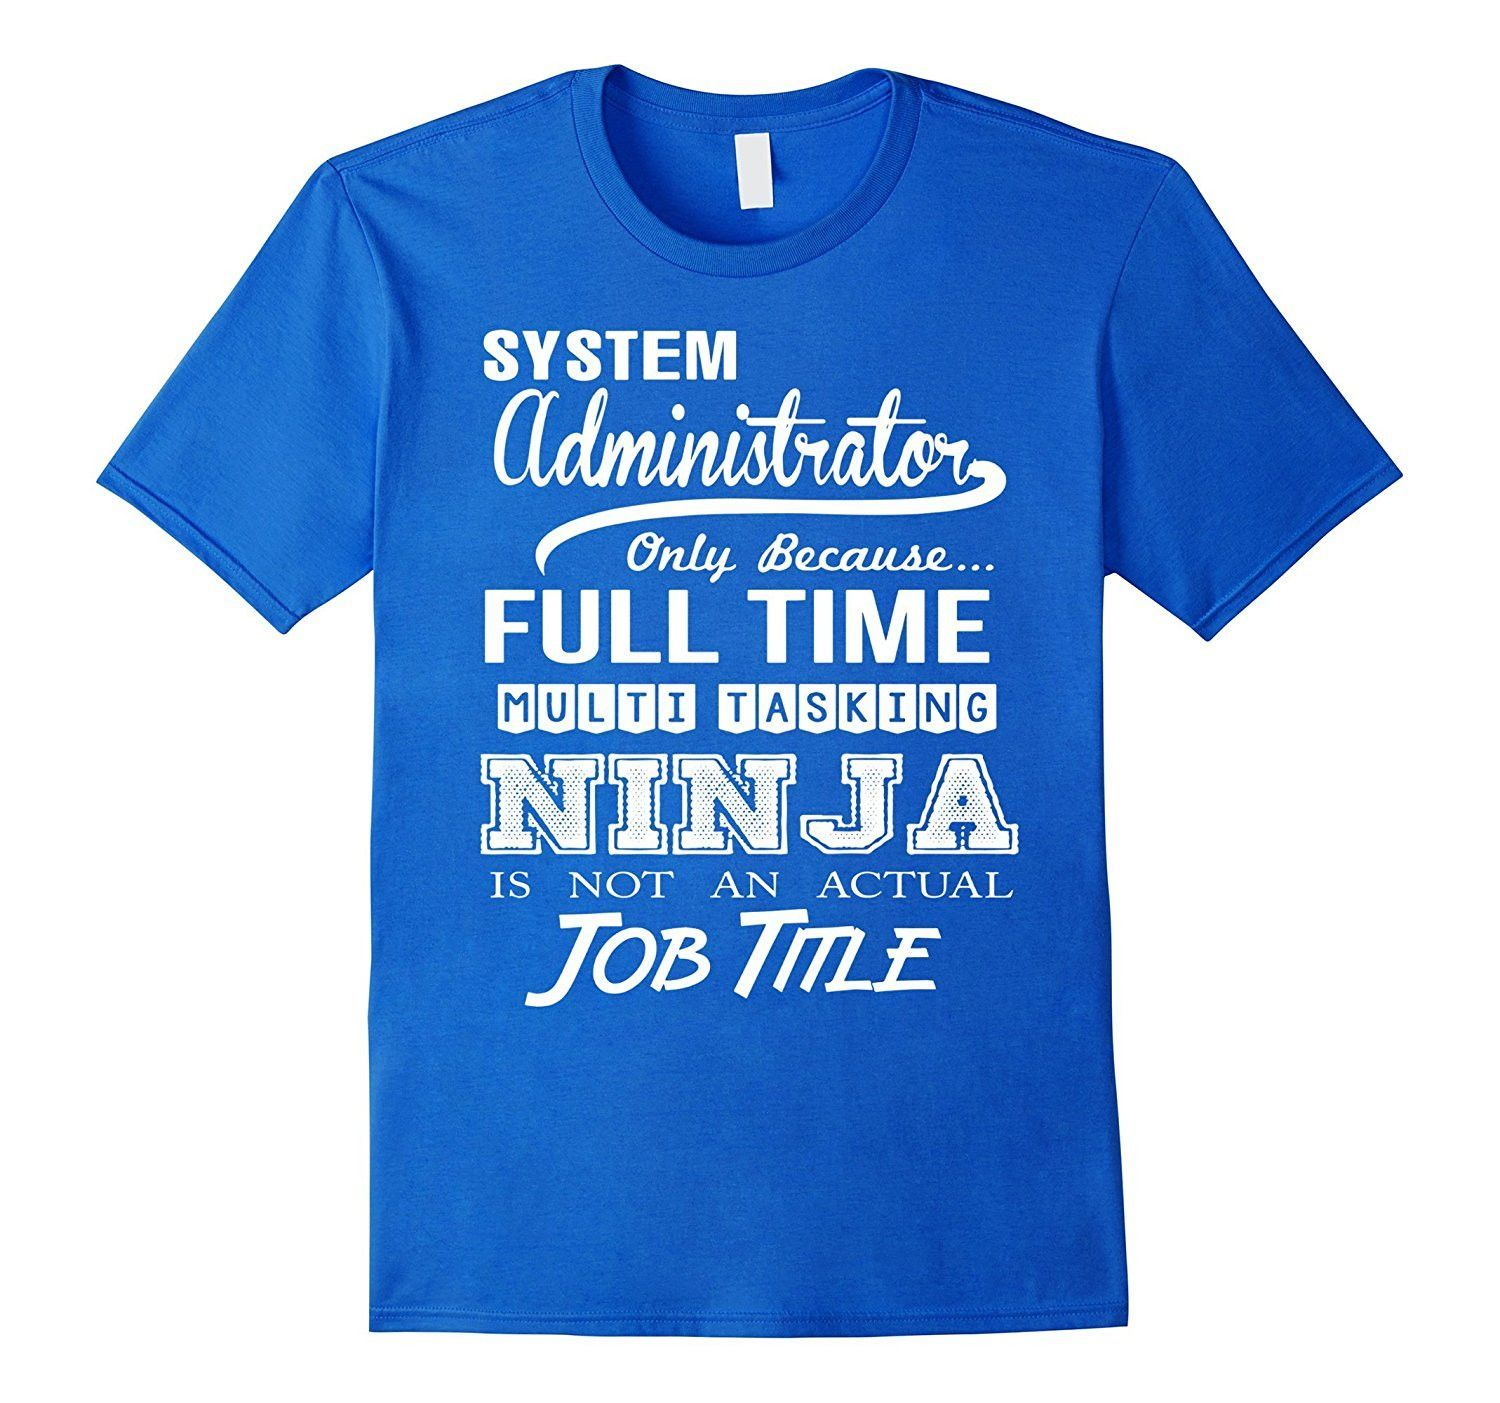 System Administrator Job Title Shirt  Shirts Products And Job Title